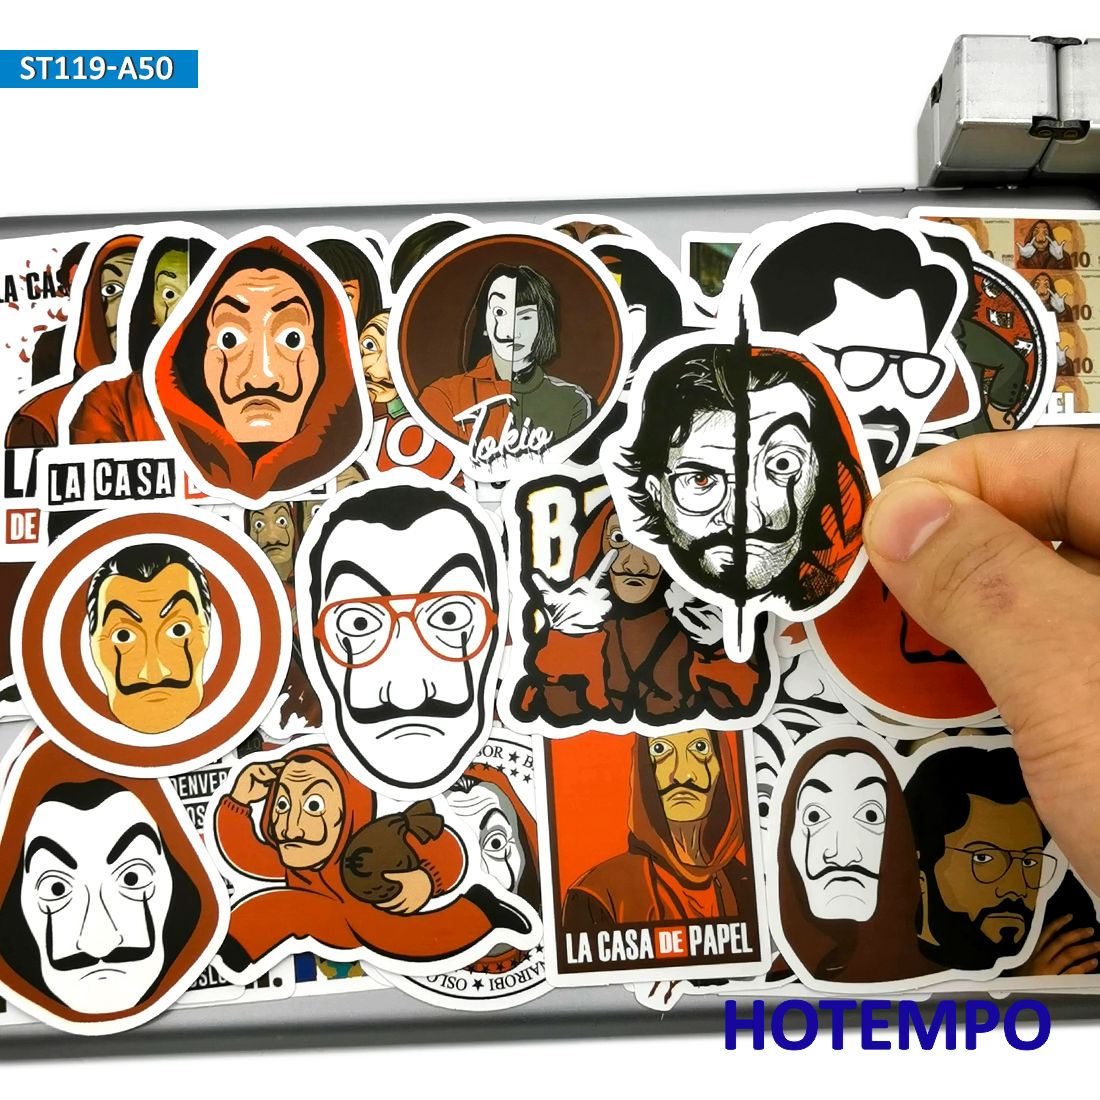 50pcs Spain Suspense TV La Casa De Papel Style Stickers House Of Paper For Mobile Phone Laptop Suitcase Skateboard Decal Sticker